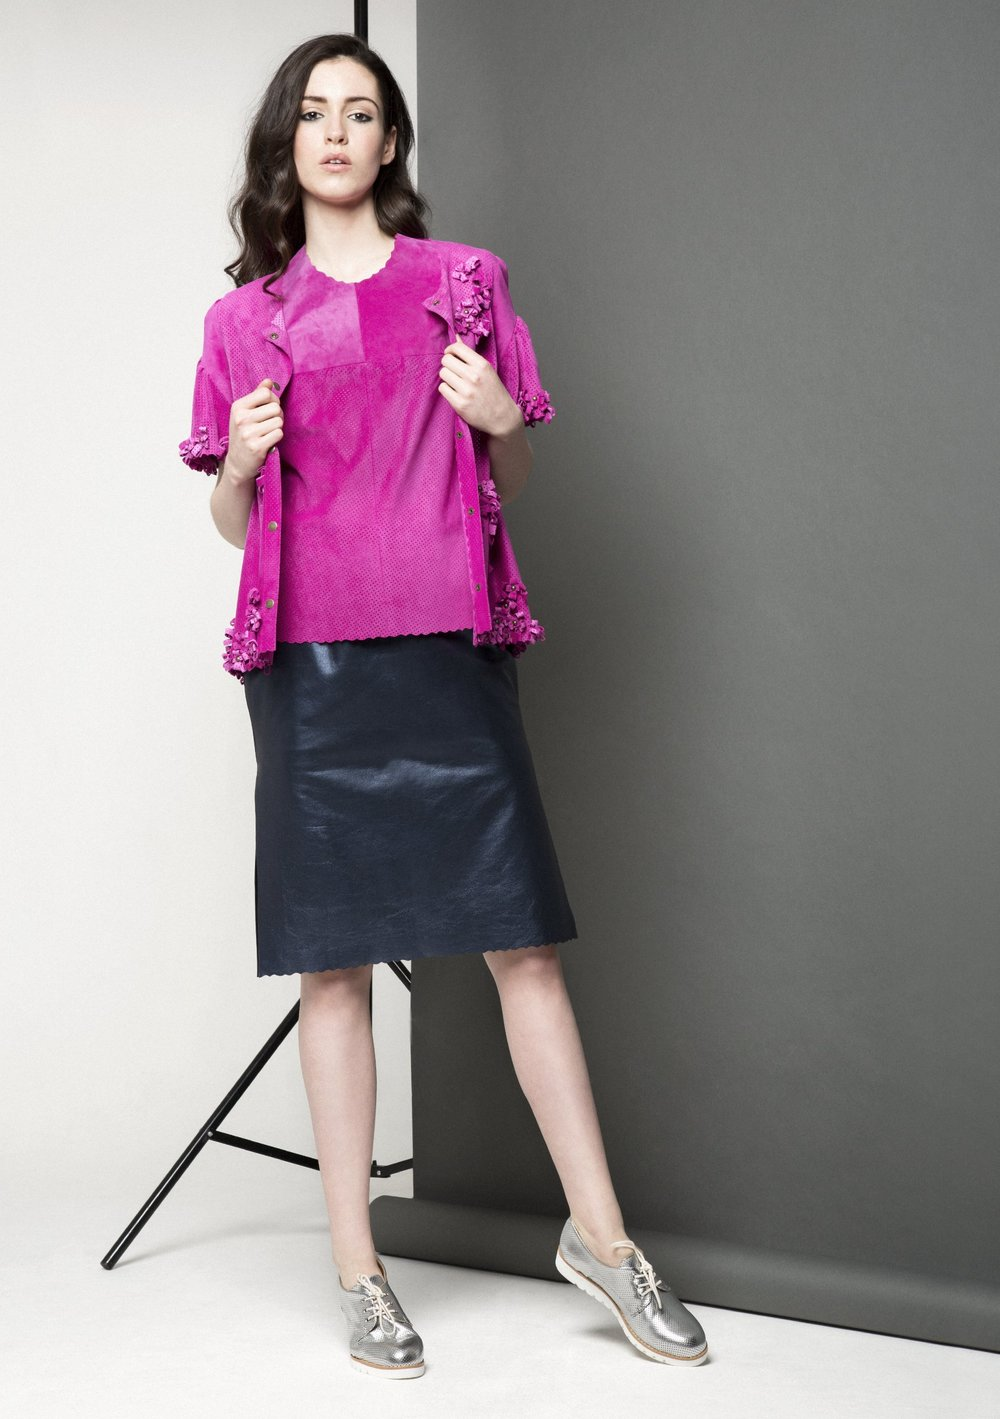 Manley AW15 Maya Leather Tee €220, Maya Bow Jacket €486, Maya Metallic Skirt €278.jpg